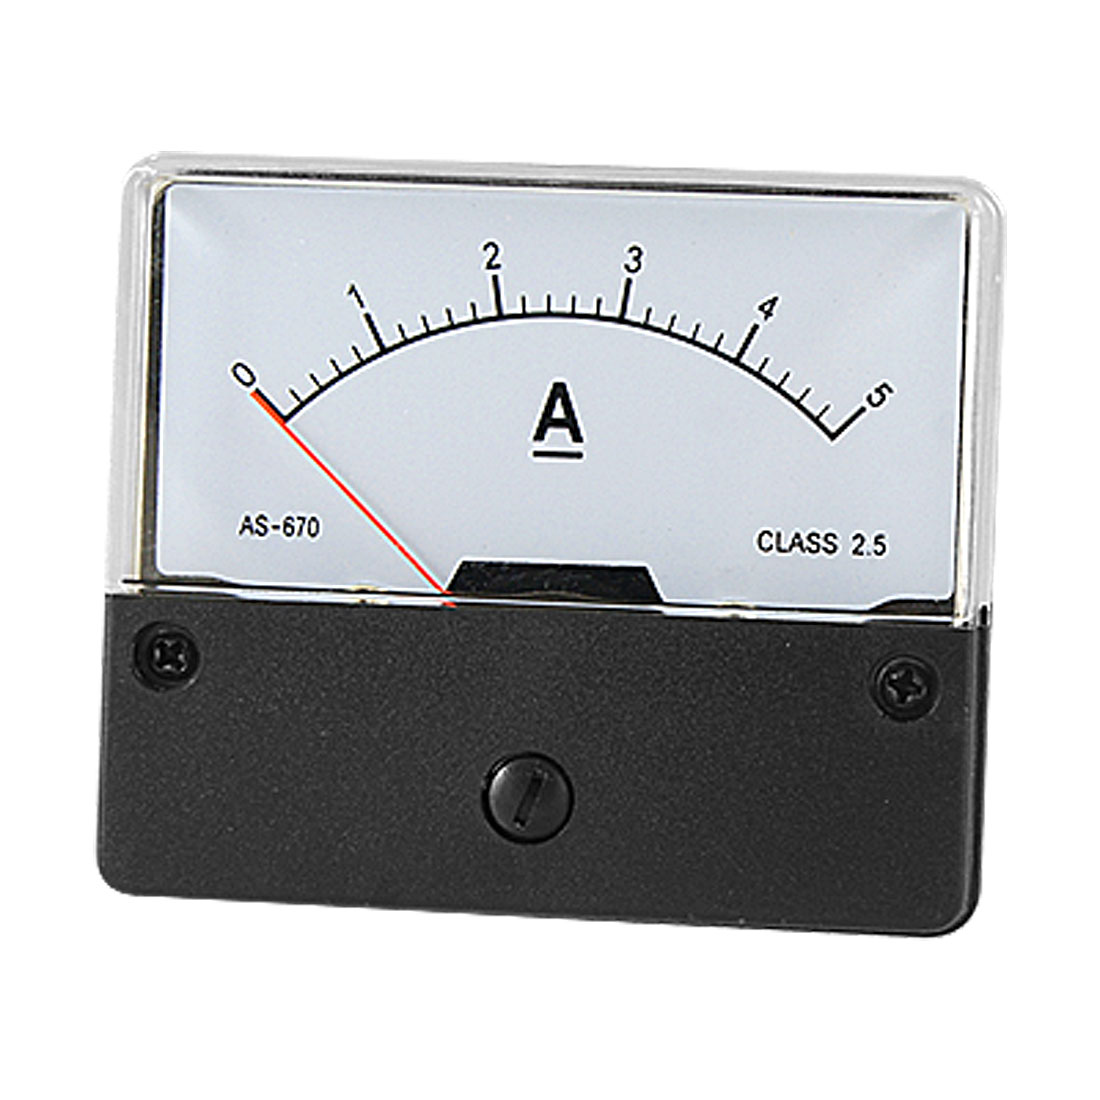 DC 0-5A Current Measuring Tool Panel Meter Amperemeter w Fitting Part